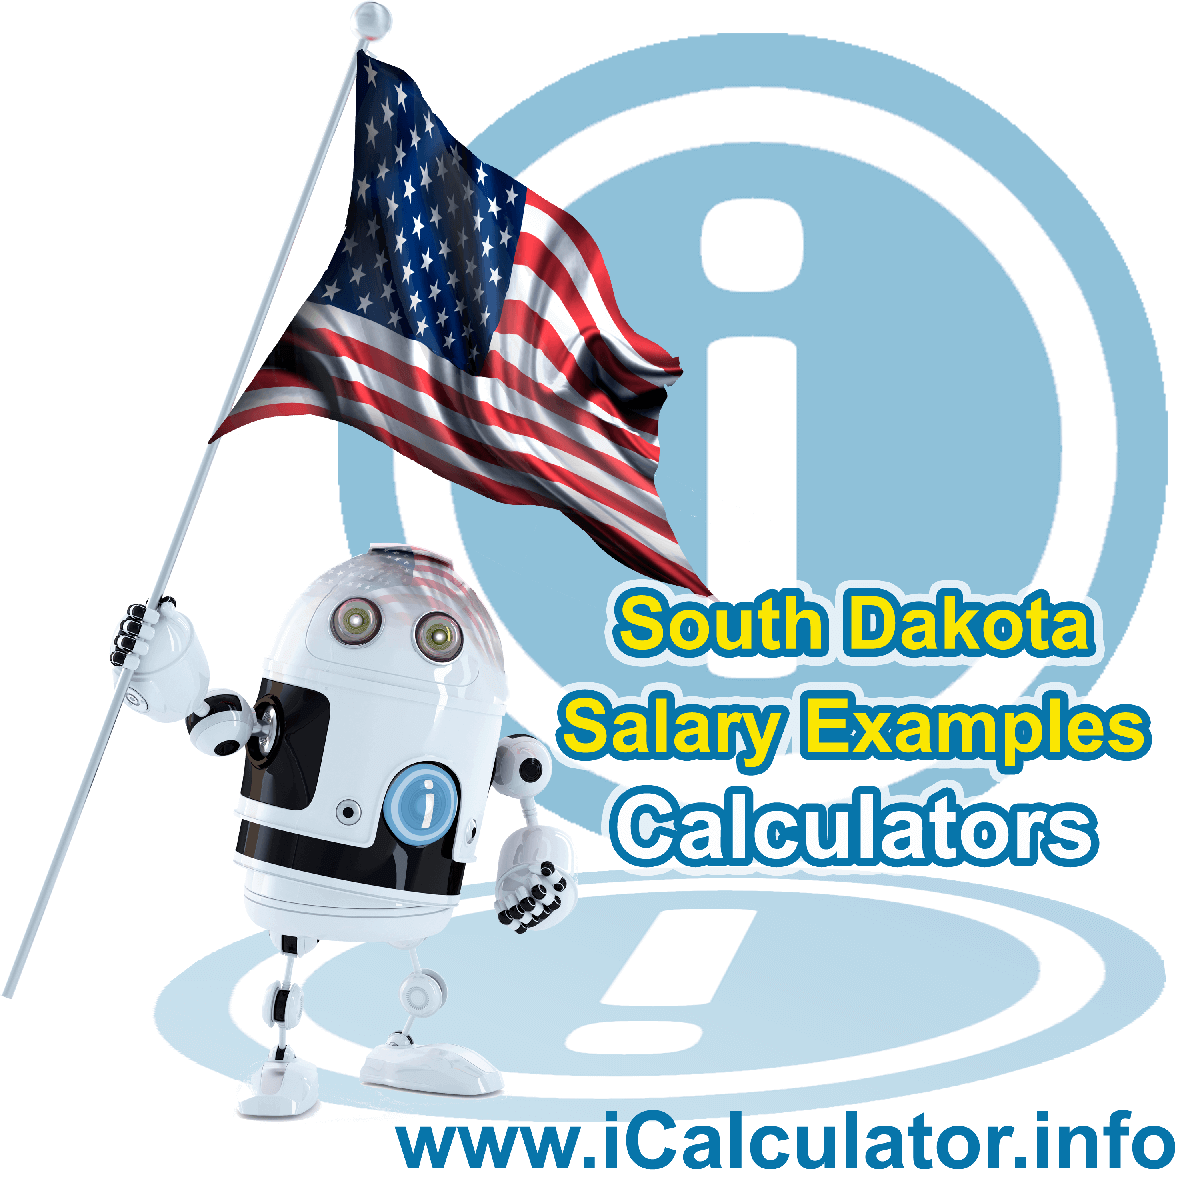 South Dakota Salary Example for $190.00 in 2020 | iCalculator | $190.00 salary example for employee and employer paying South Dakota State tincome taxes. Detailed salary after tax calculation including South Dakota State Tax, Federal State Tax, Medicare Deductions, Social Security, Capital Gains and other income tax and salary deductions complete with supporting South Dakota state tax tables